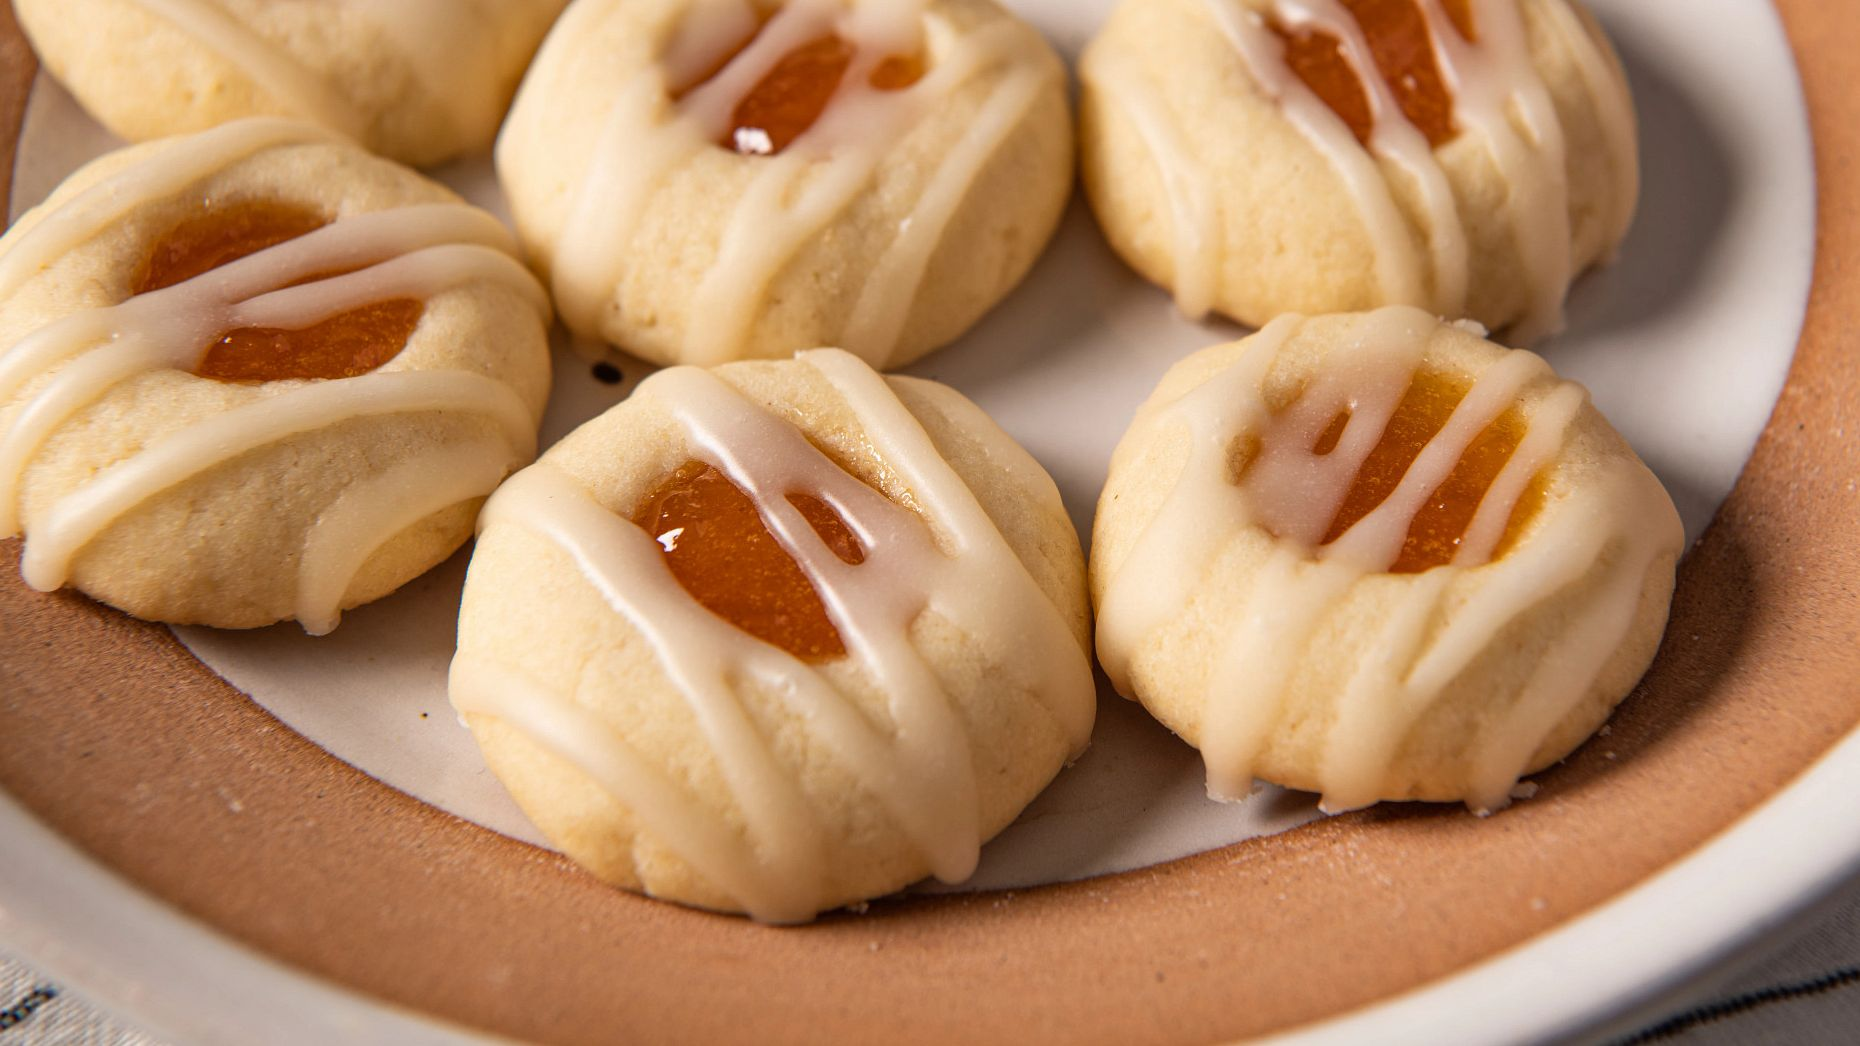 ginger_peach_thumbprint_cookies_with_vanilla_drizzle10889.jpg